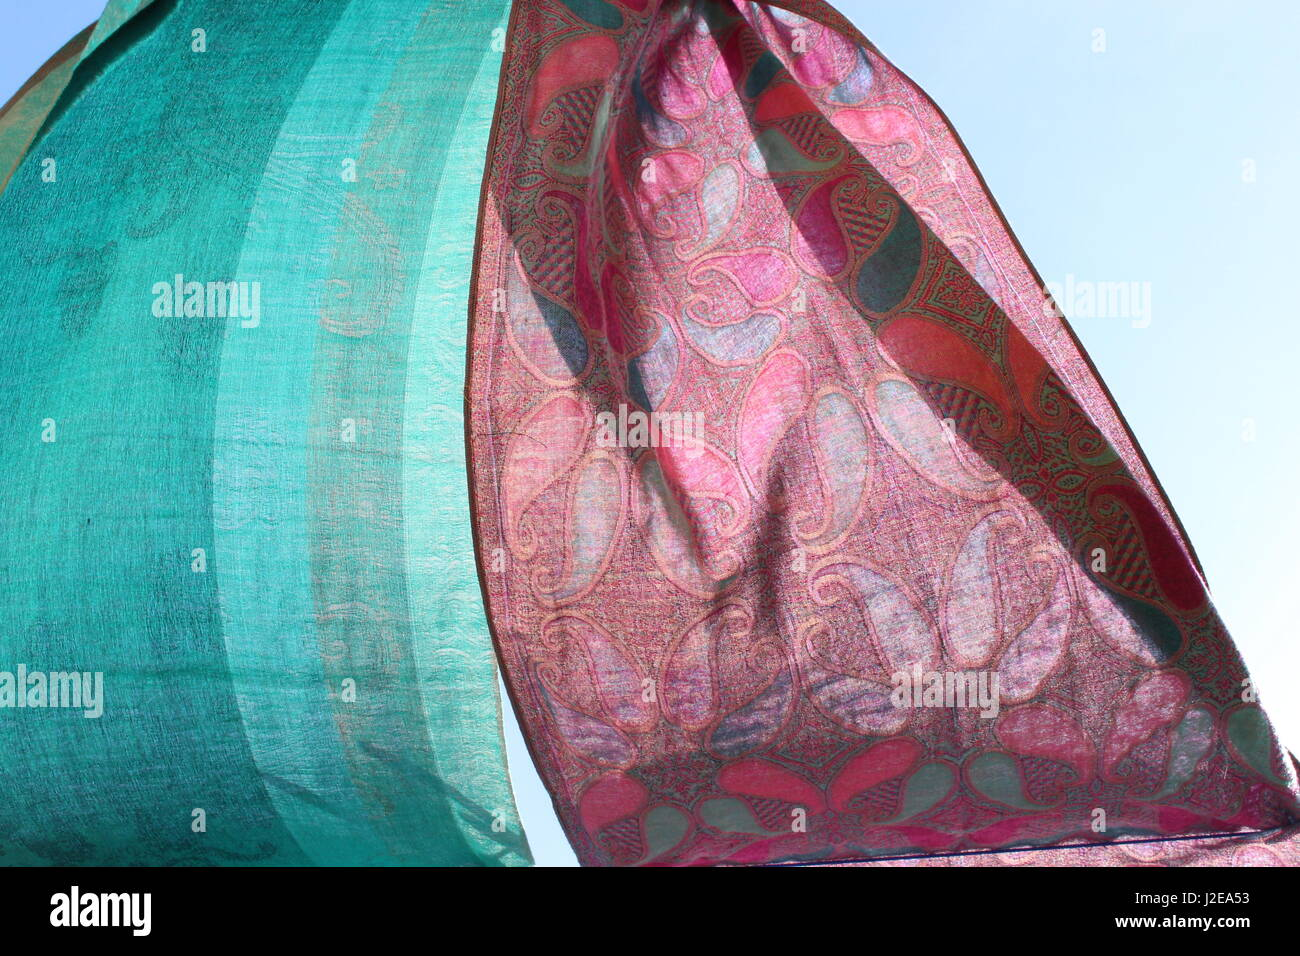 2 silk scarves, pink and turquoise, blowing in the breeze against a summer blue sky Stock Photo